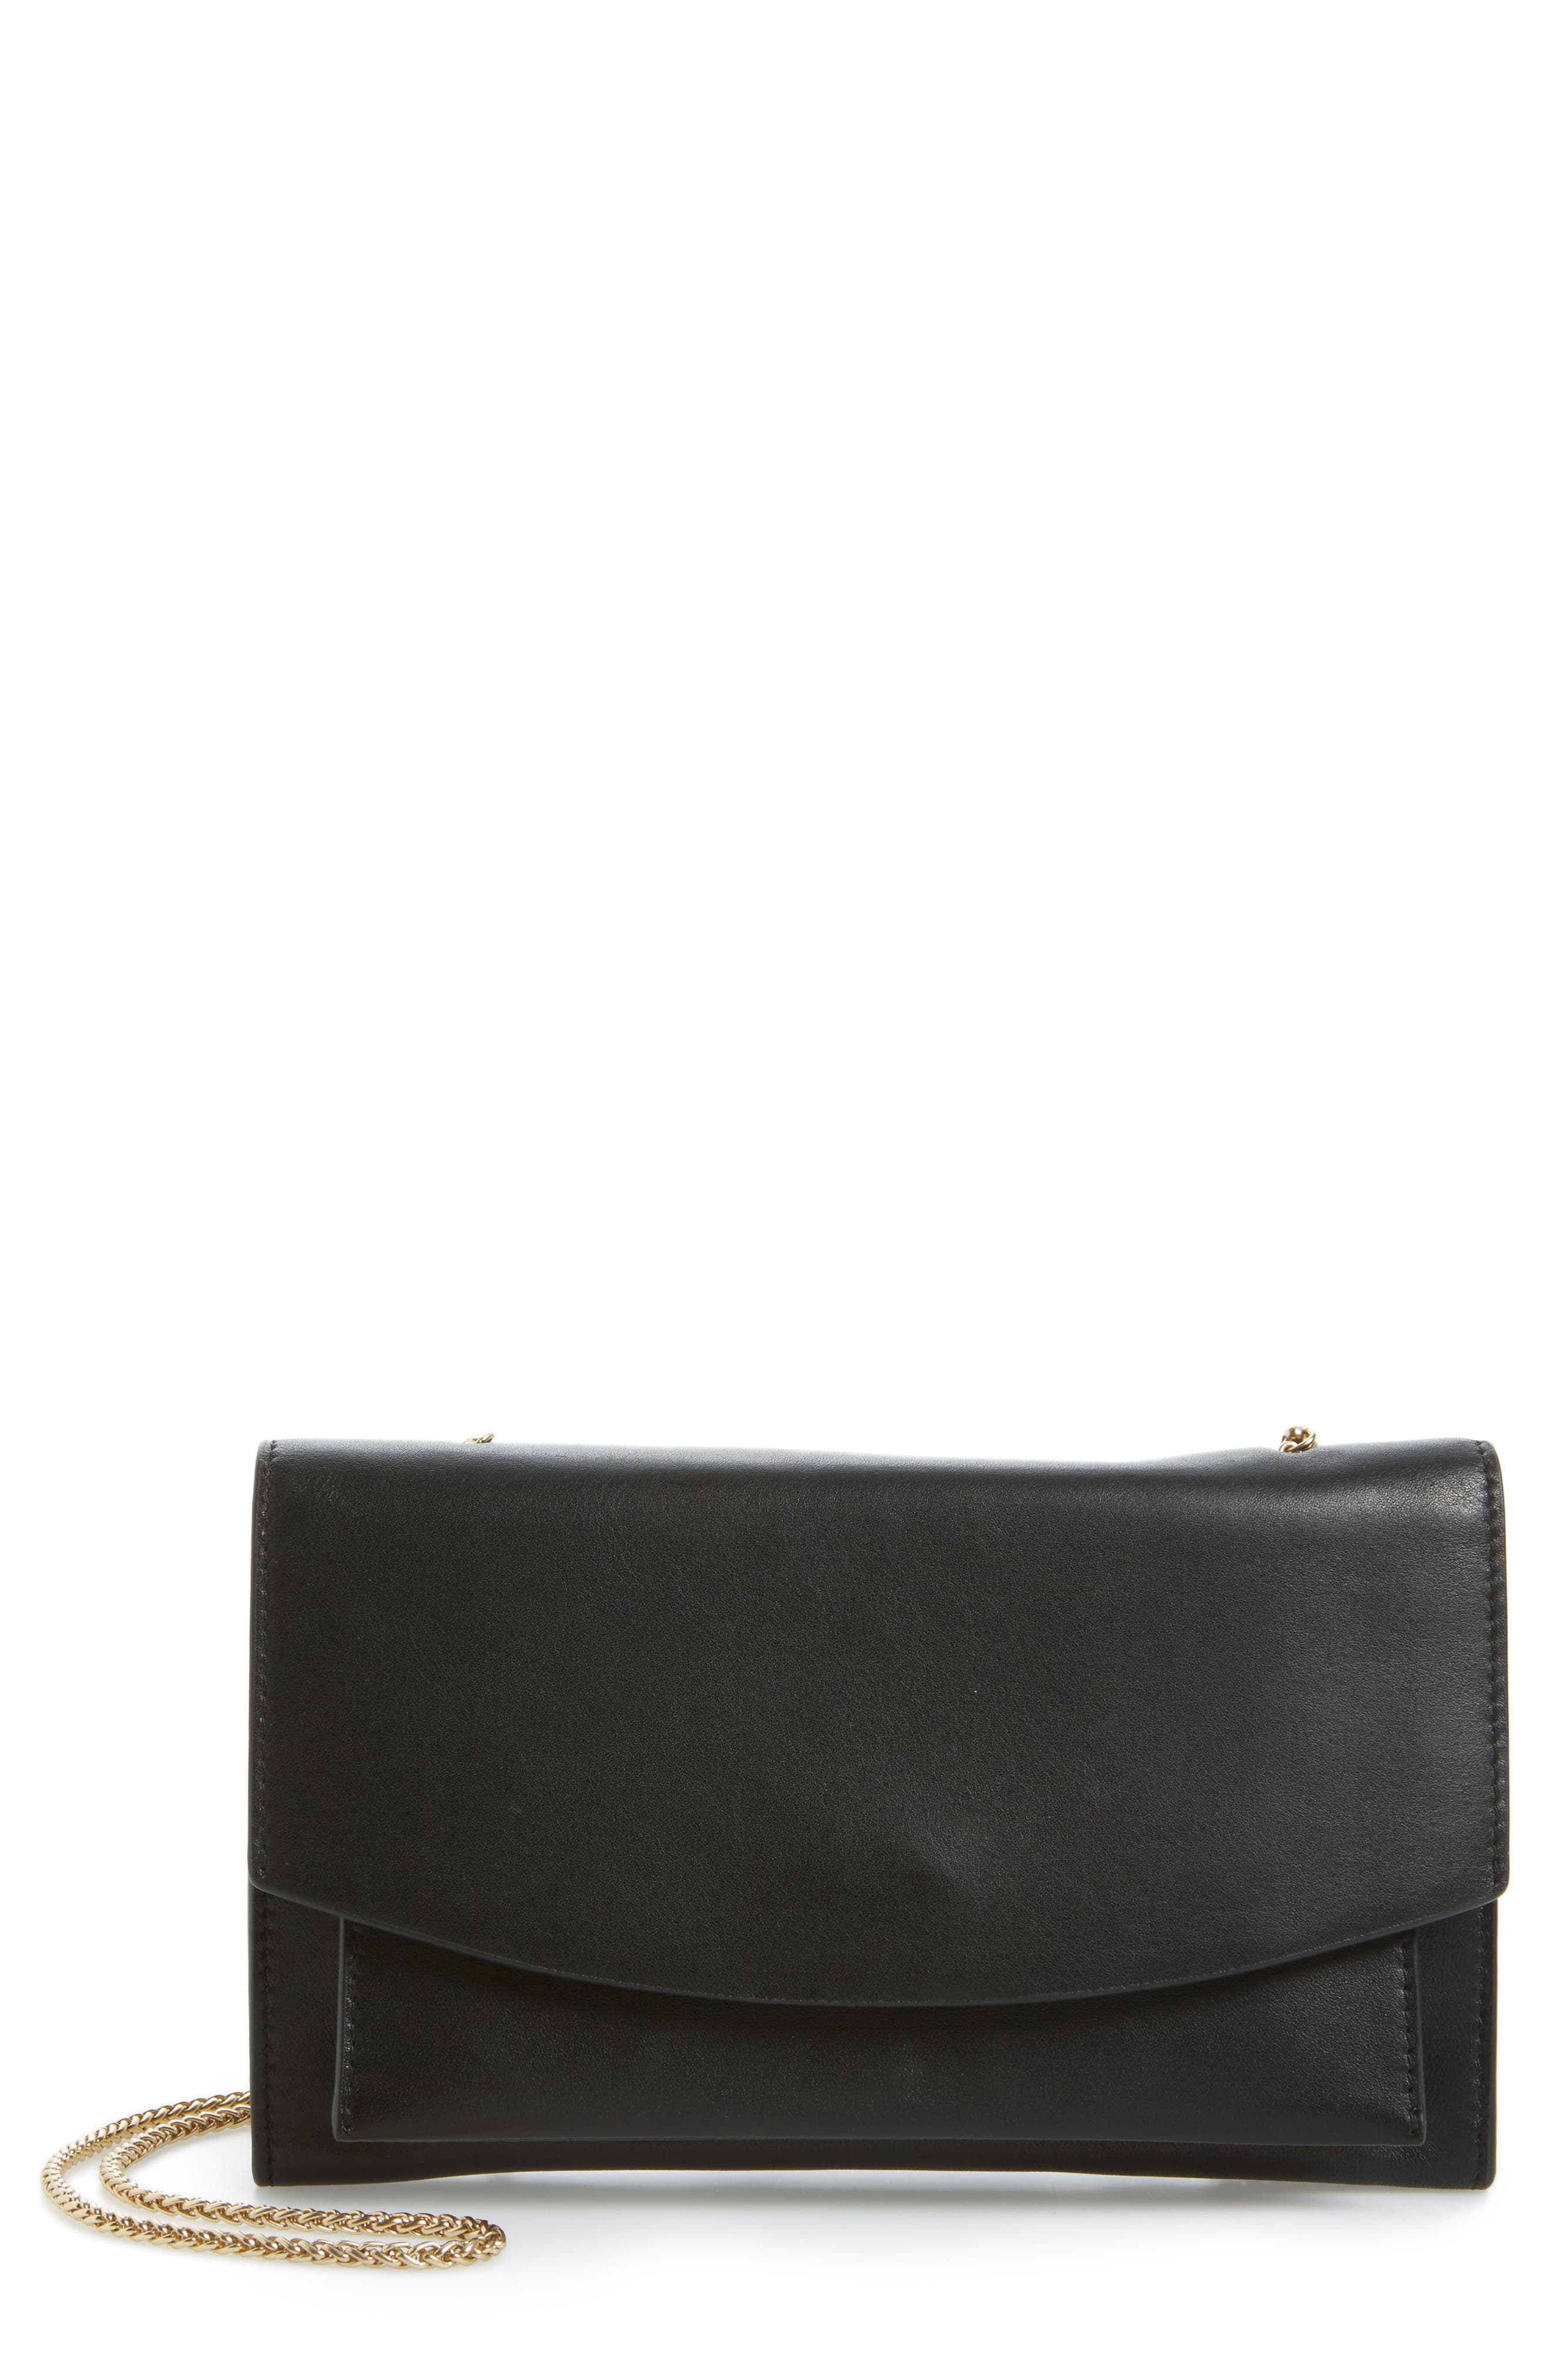 Eryka Leather Envelope Clutch with Detachable Chain,                             Main thumbnail 1, color,